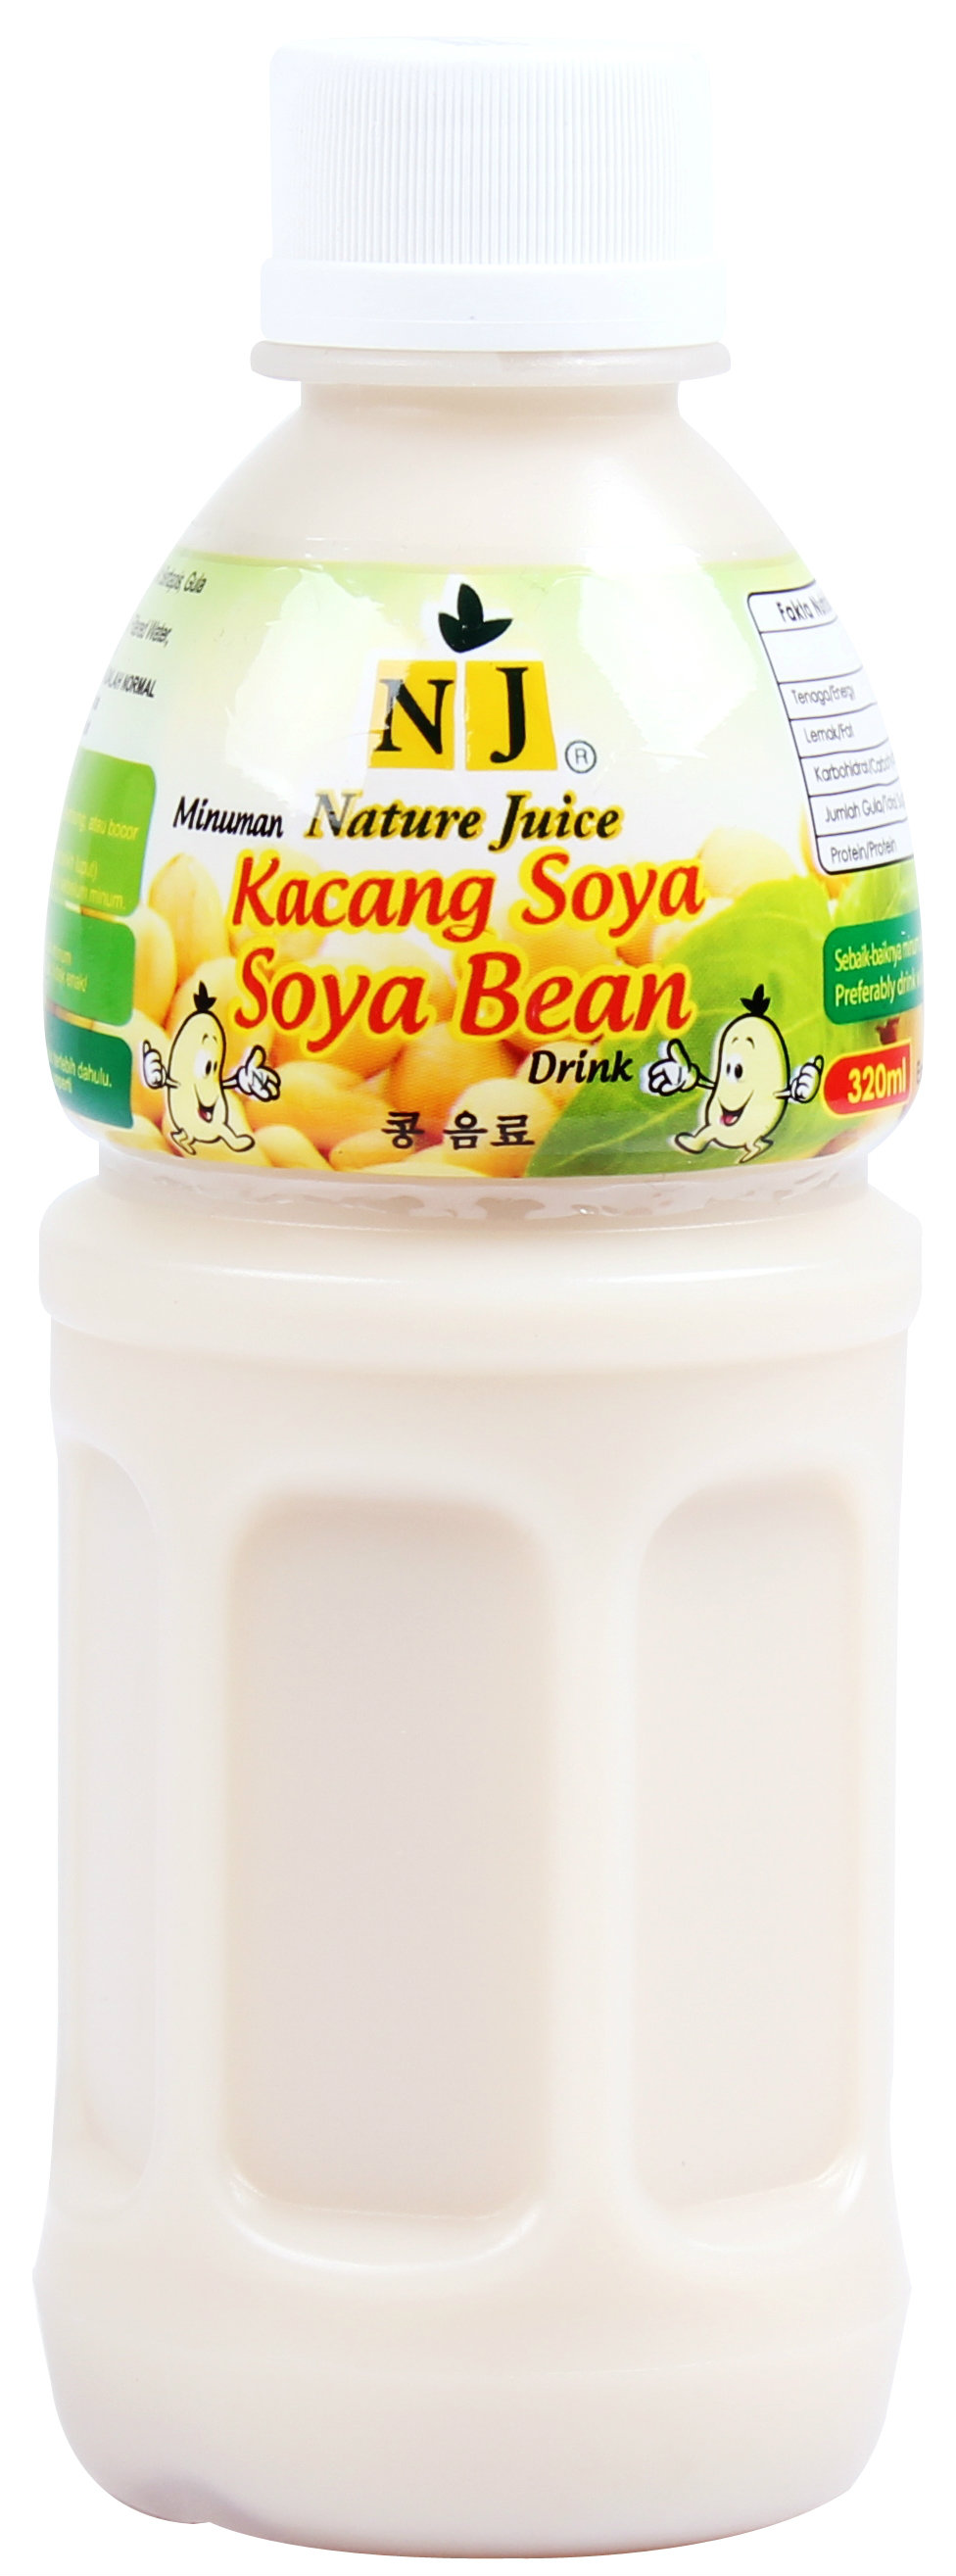 NJ Soya Milk